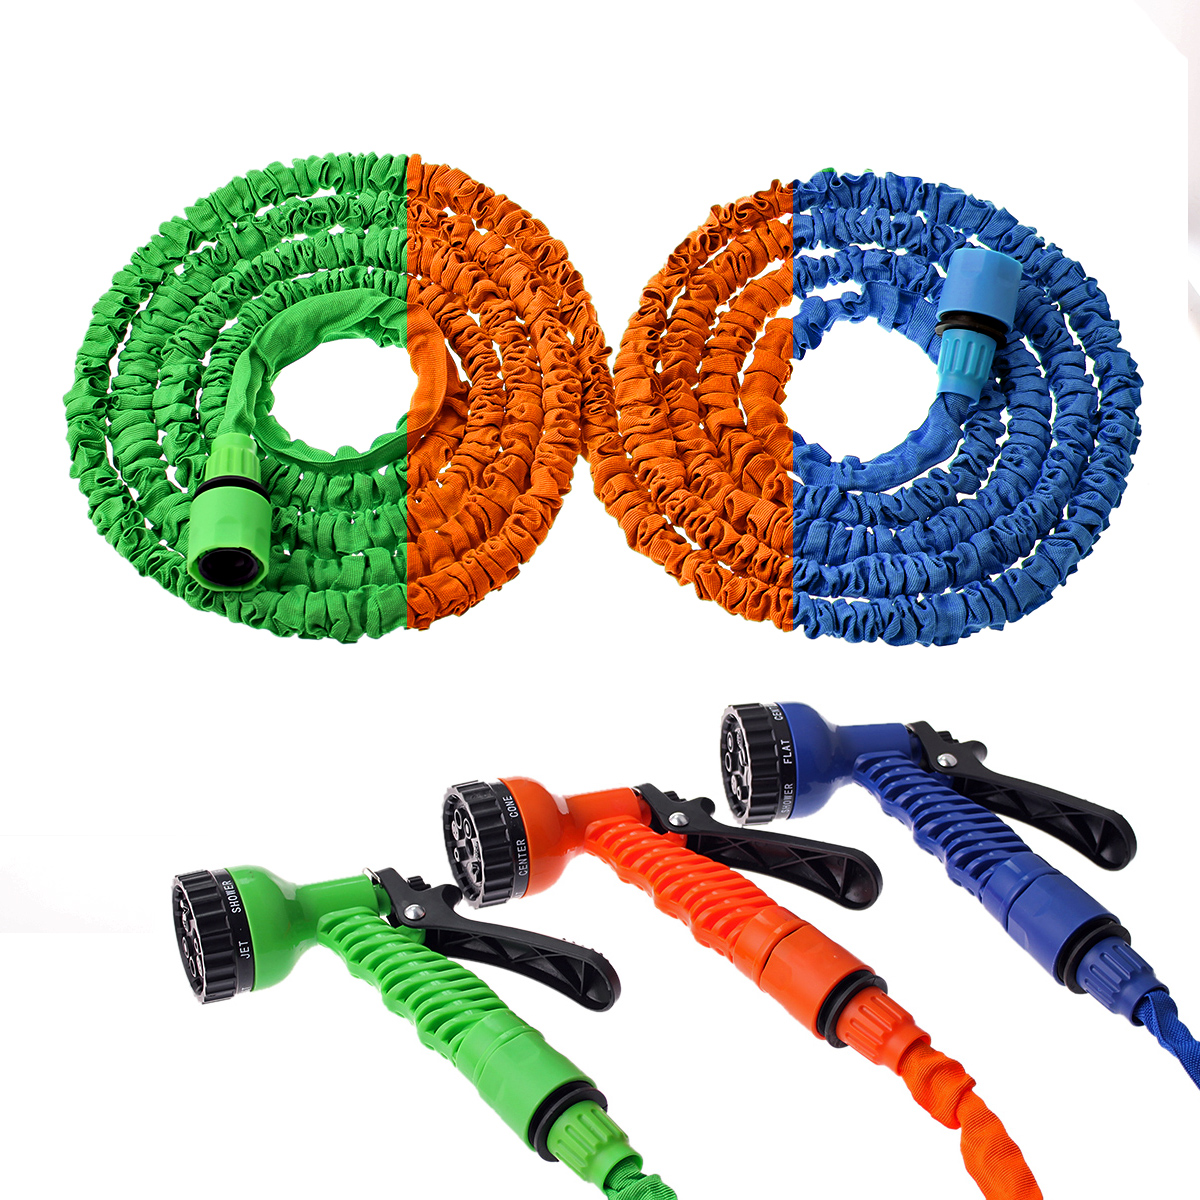 25FT-150FT Garden Hose Expandable Magic Flexible Water Hose EU Hose Plastic Hoses Pipe With Spray Gun To Watering Hot Selling